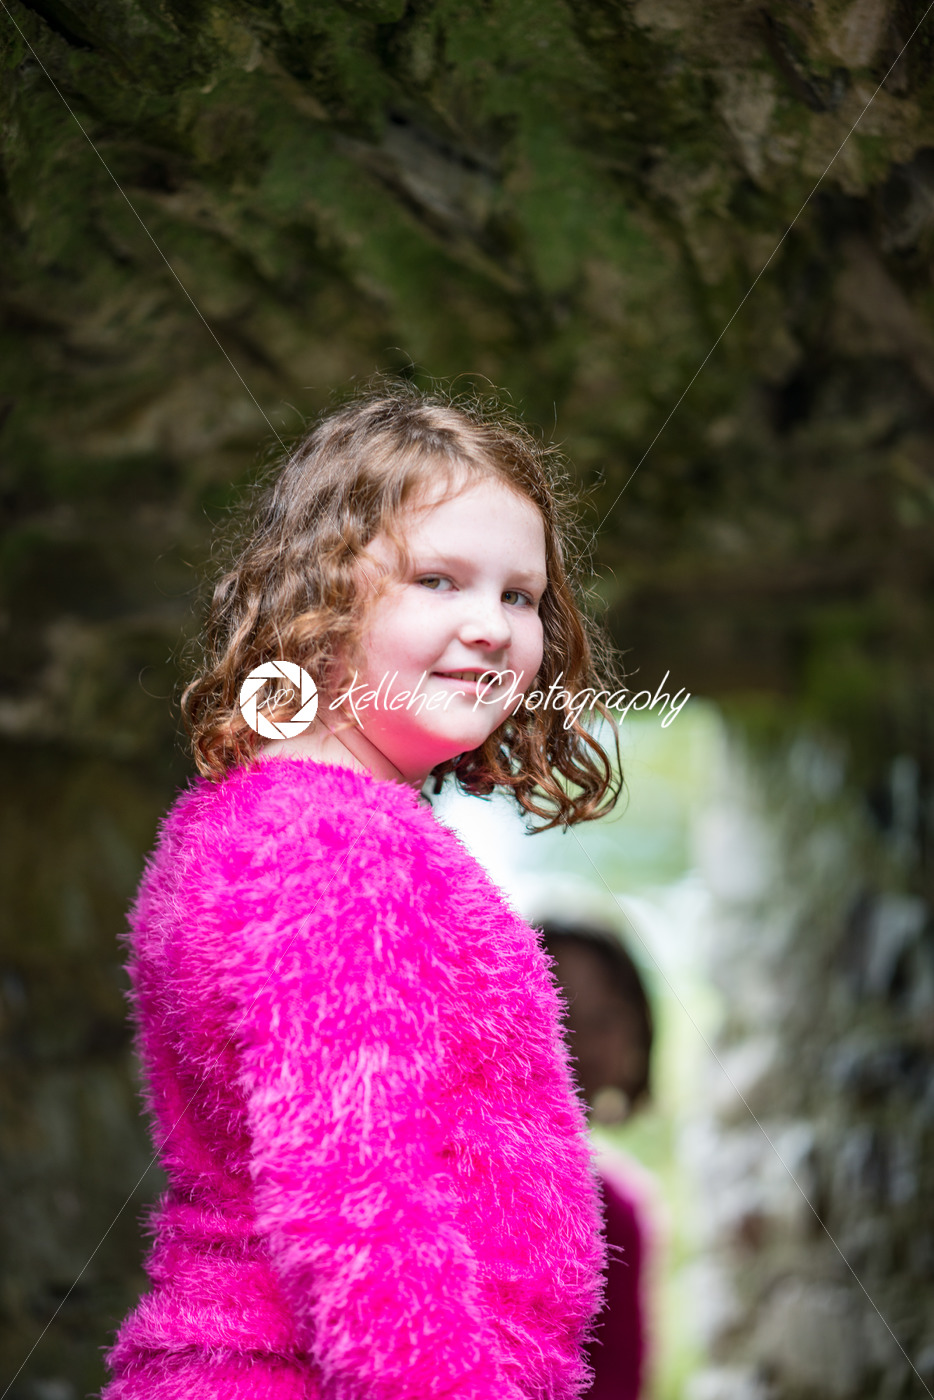 Young little girl portrait looking and smiling at the camera while exploring in an old castle - Kelleher Photography Store